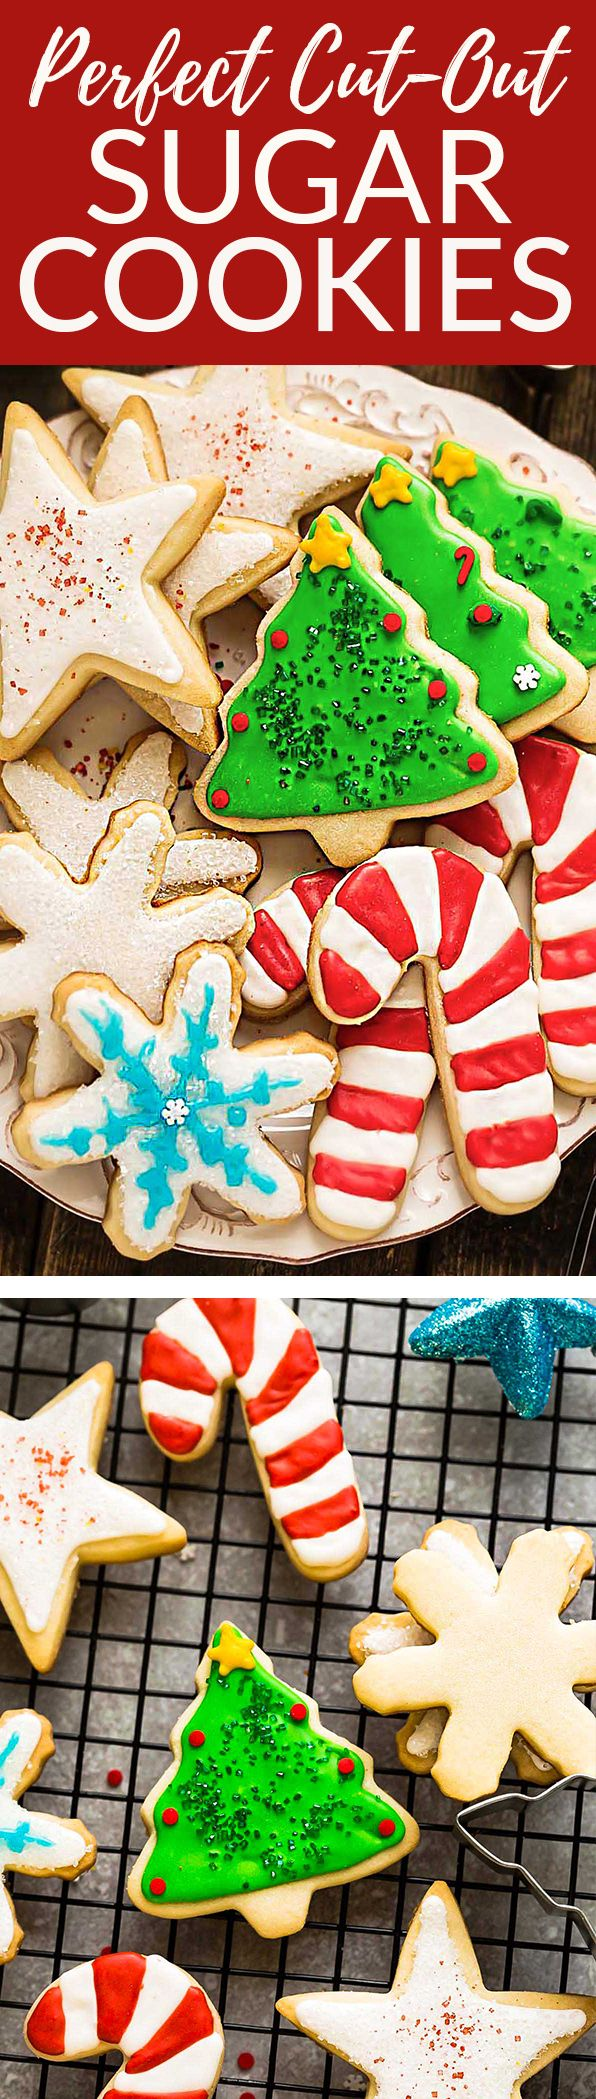 The BEST sugar cookie recipe for making decorated cut out Christmas / holiday shapes with perfect edges. Best of all, these delicious cookies bake up soft, flavorful and are easy to make with a just a few pantry ingredients. Plus instructions on how to decorate with royal icing and tips on how to make amazing cookies that don't spread. Perfect for Santa's cookie tray or holiday parties. #sugarcookies #cookies #christmas #cutout #christmascookies #holiday #dessert